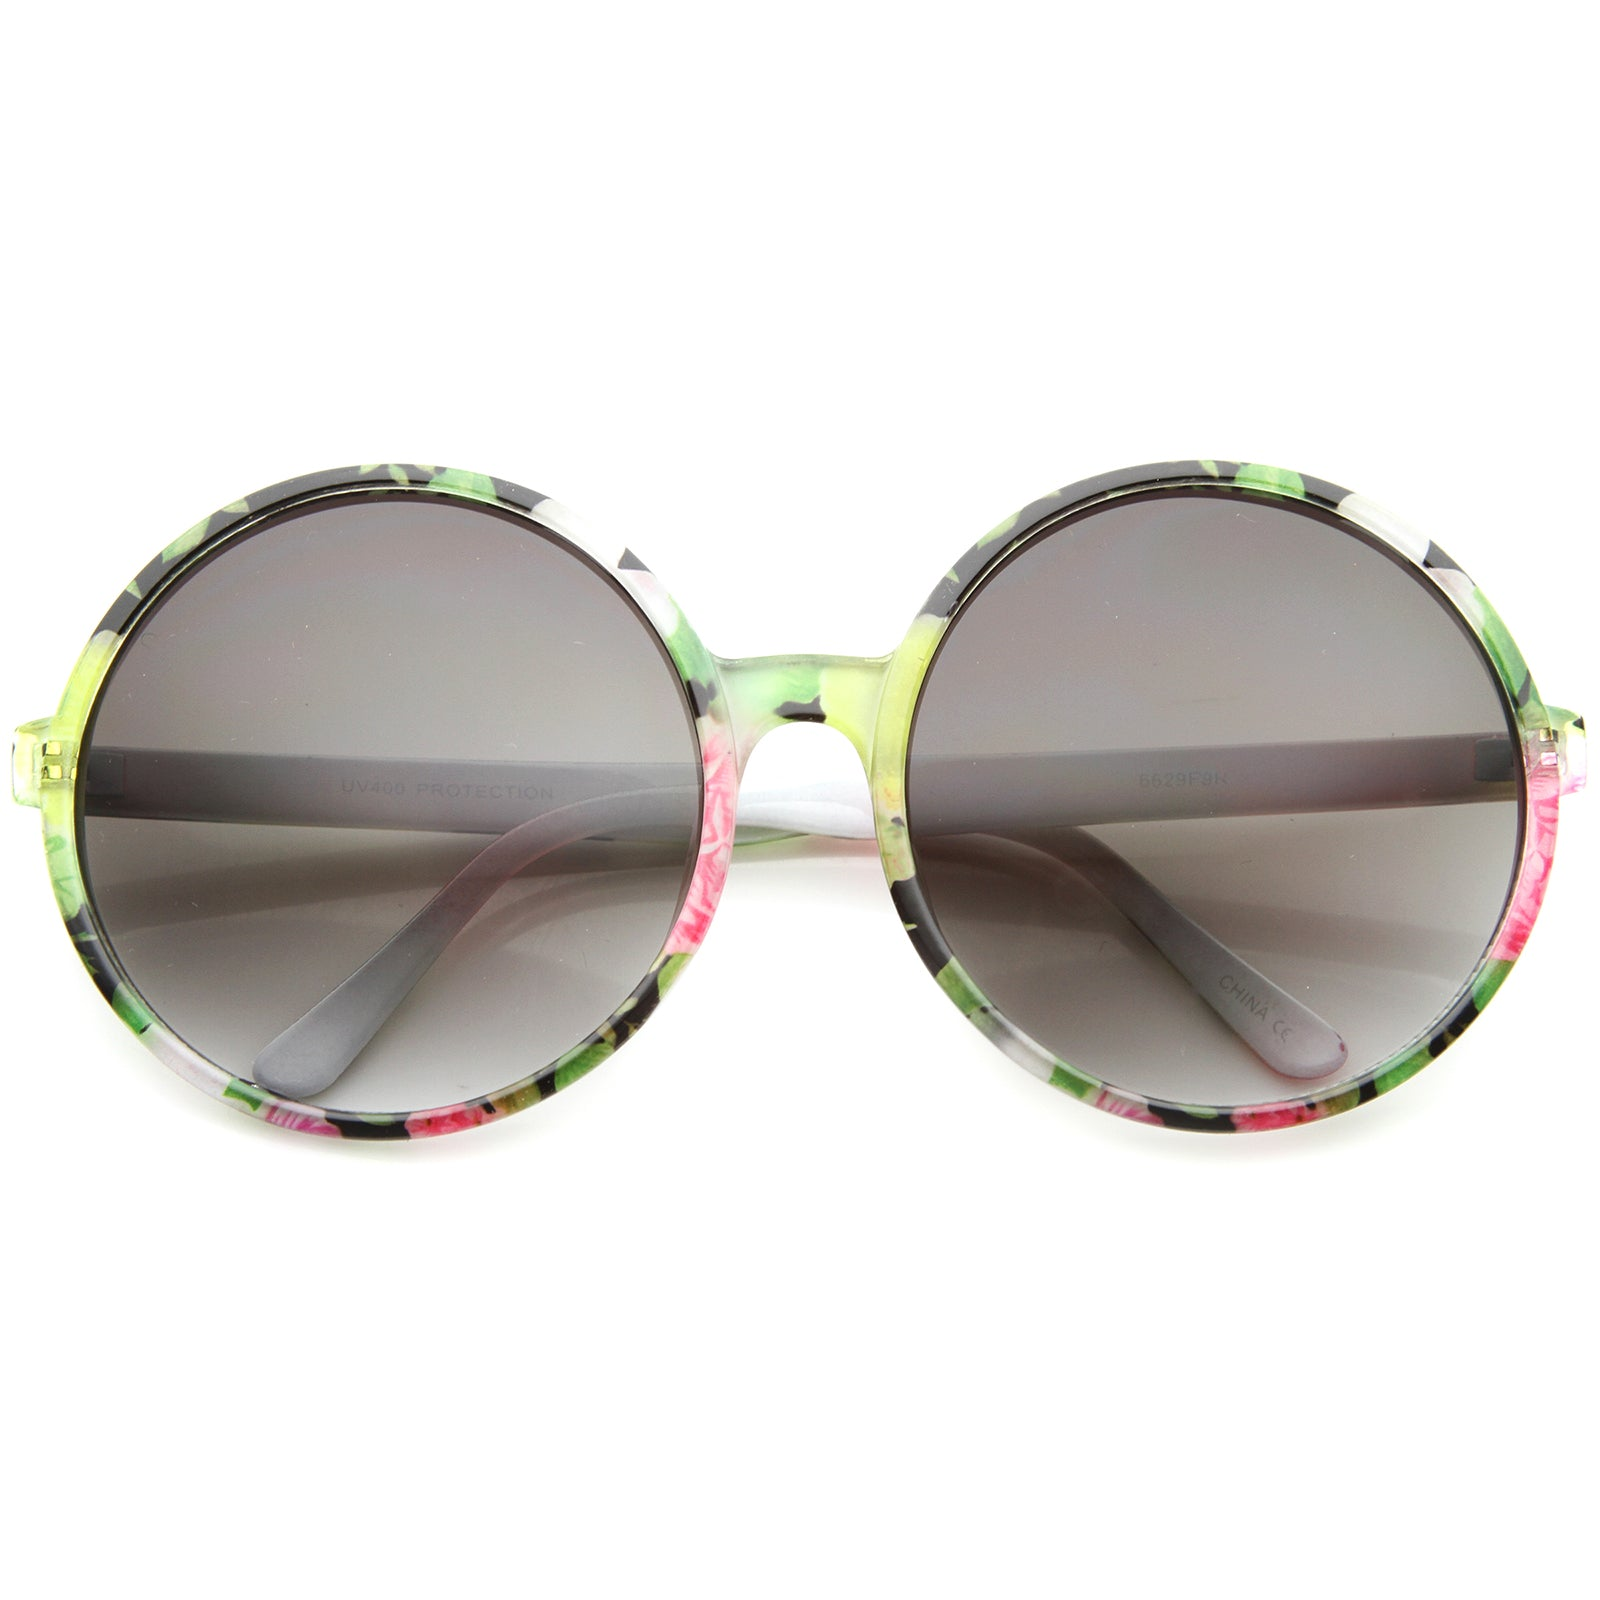 Women's Fashion Floral Print Gradient Lens Oversize Round Sunglasses 66mm - sunglass.la - 5